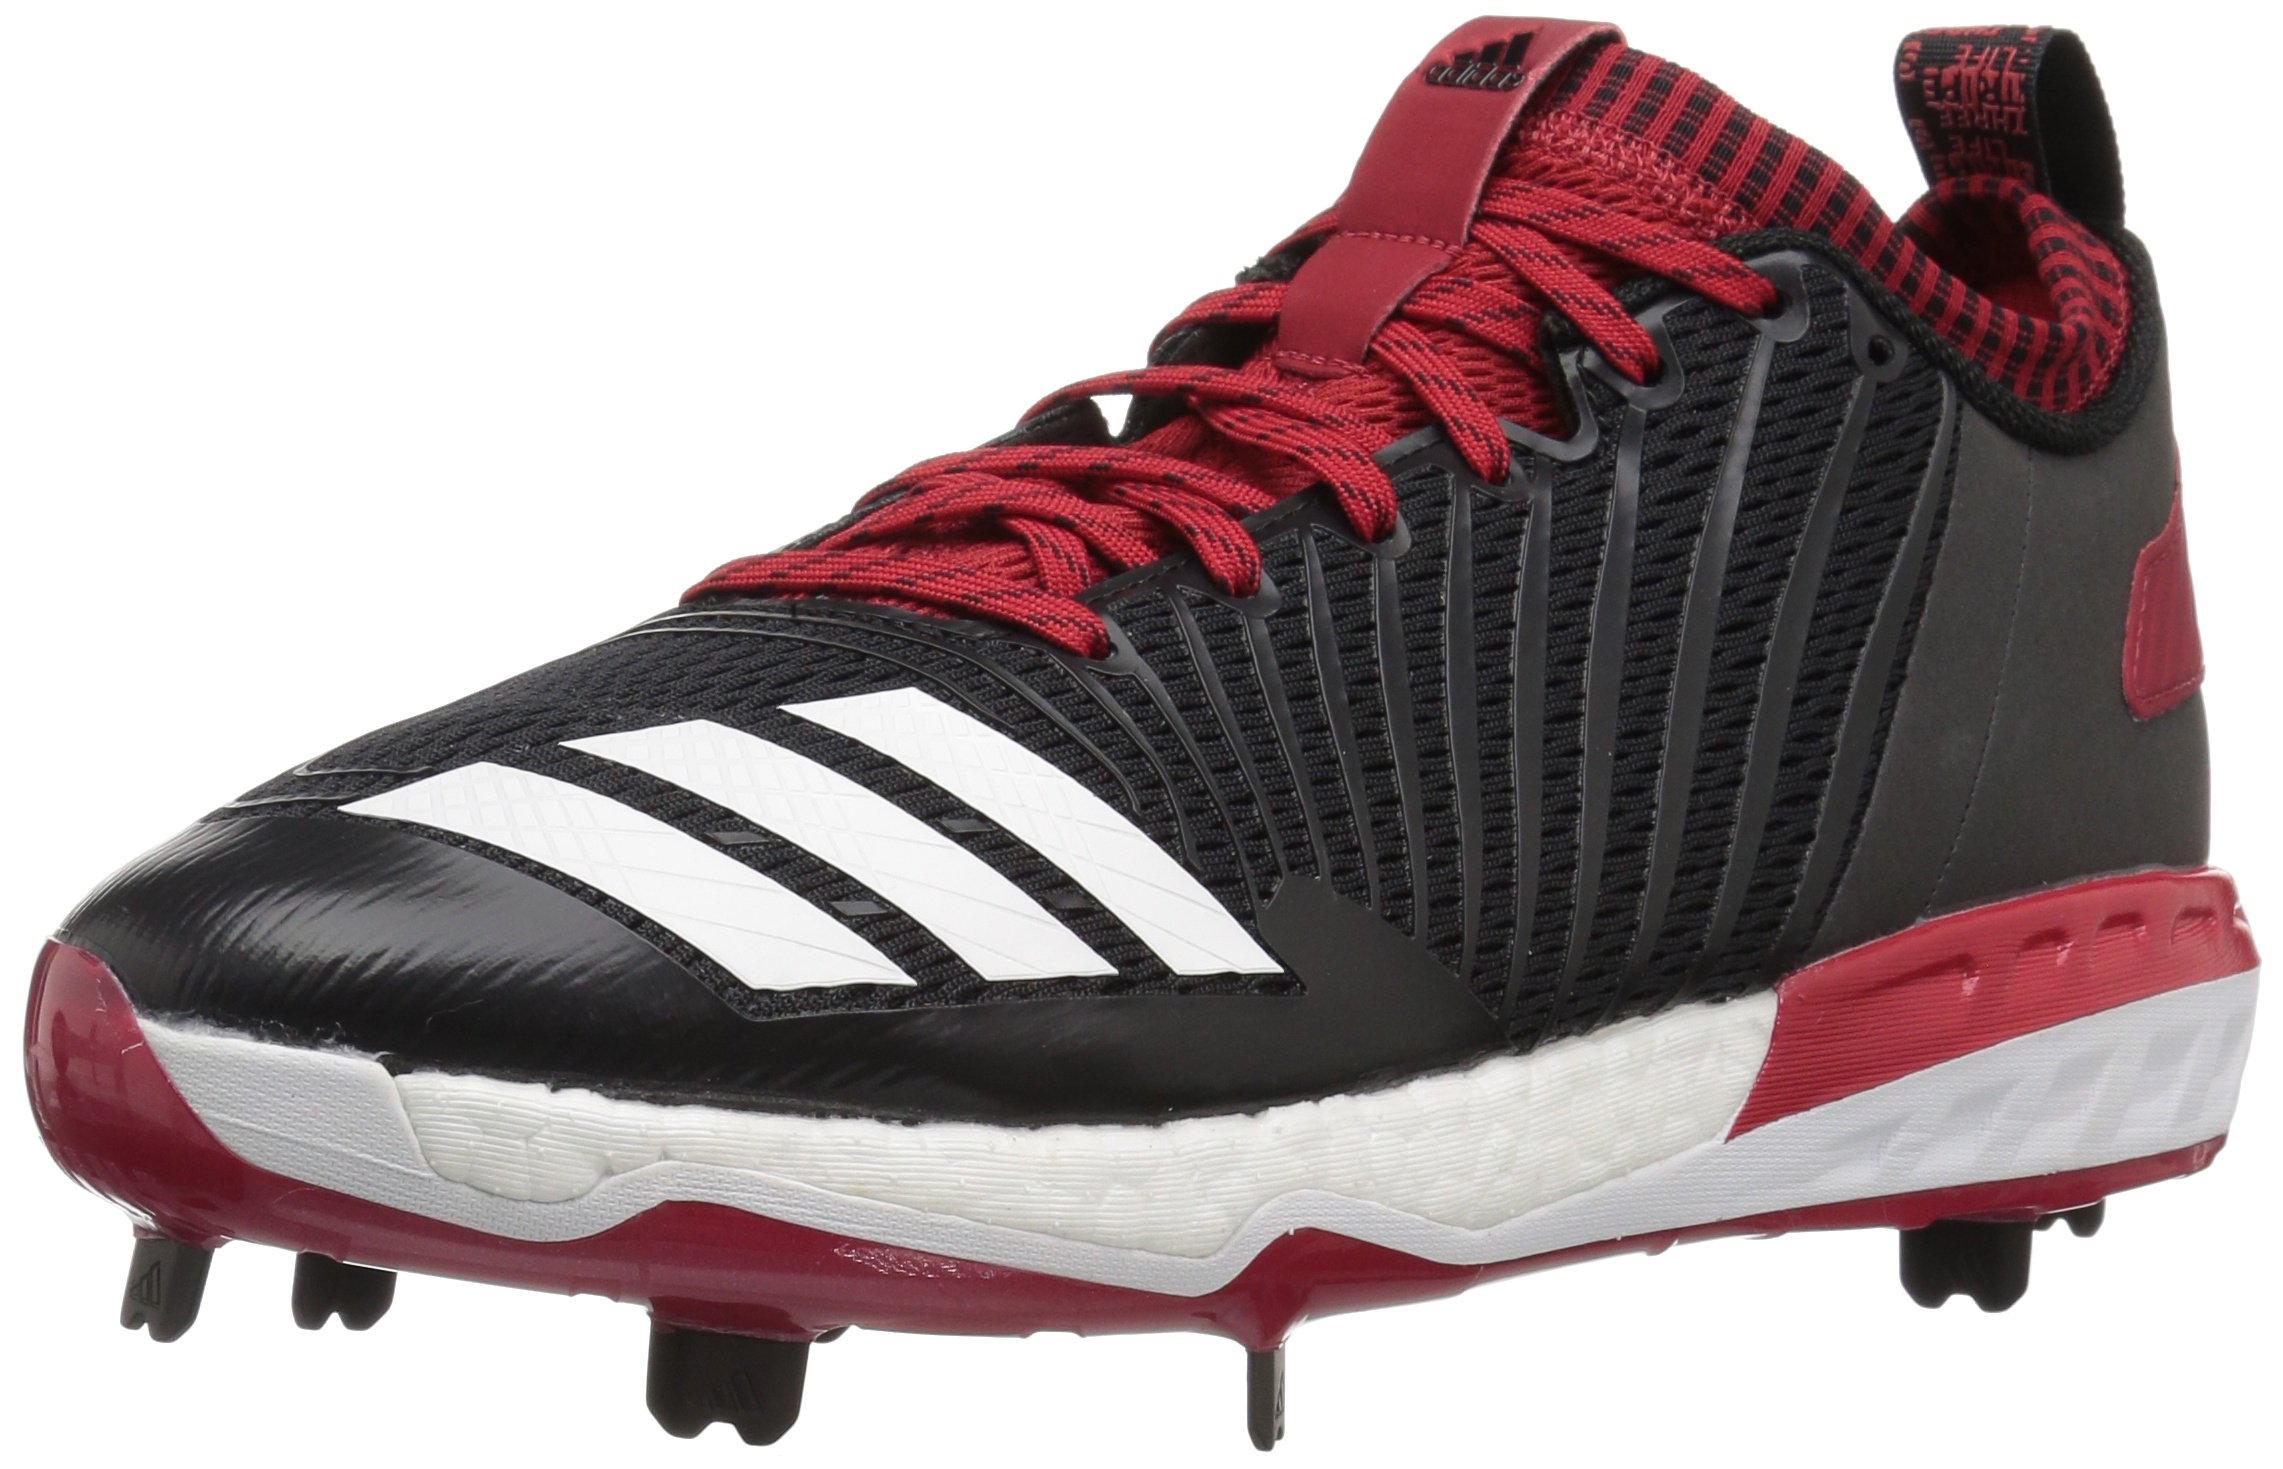 adidas Men's Freak X Carbon Mid Baseball Shoe, Black/White/Power RED, 7.5 Medium US by adidas (Image #1)